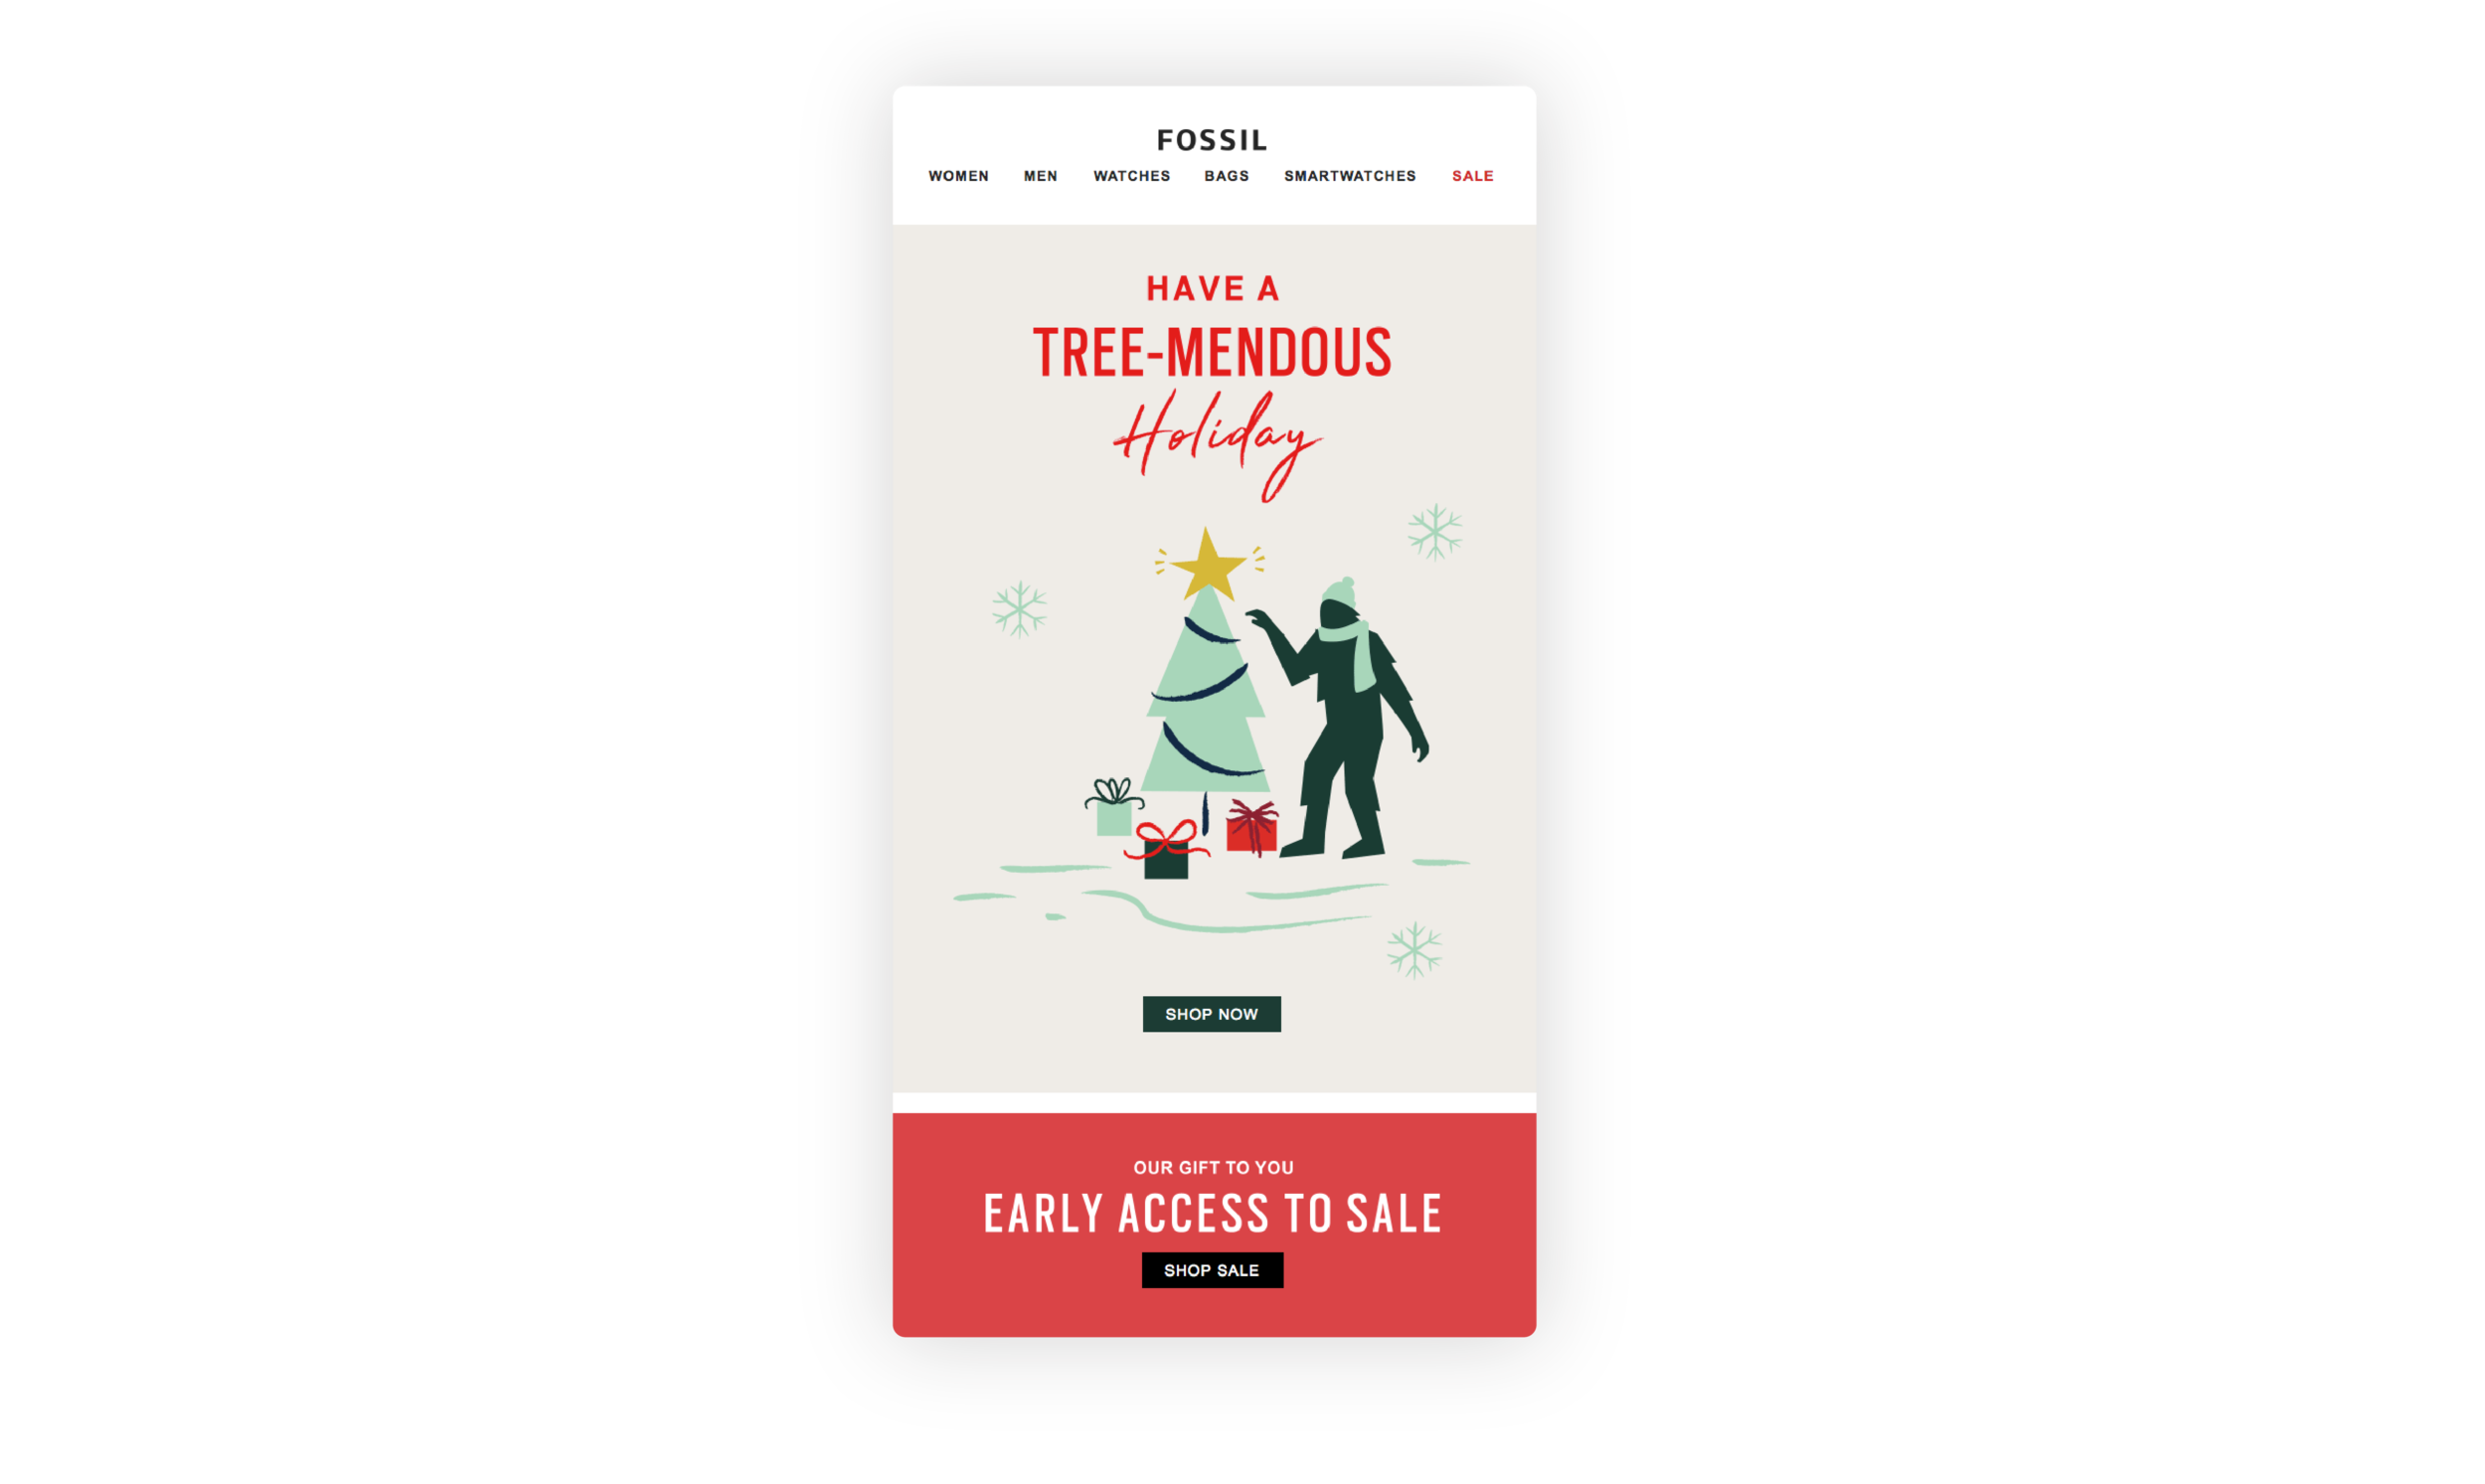 Fossil sends customers the message 'Have a Tree-mendous Holiday'